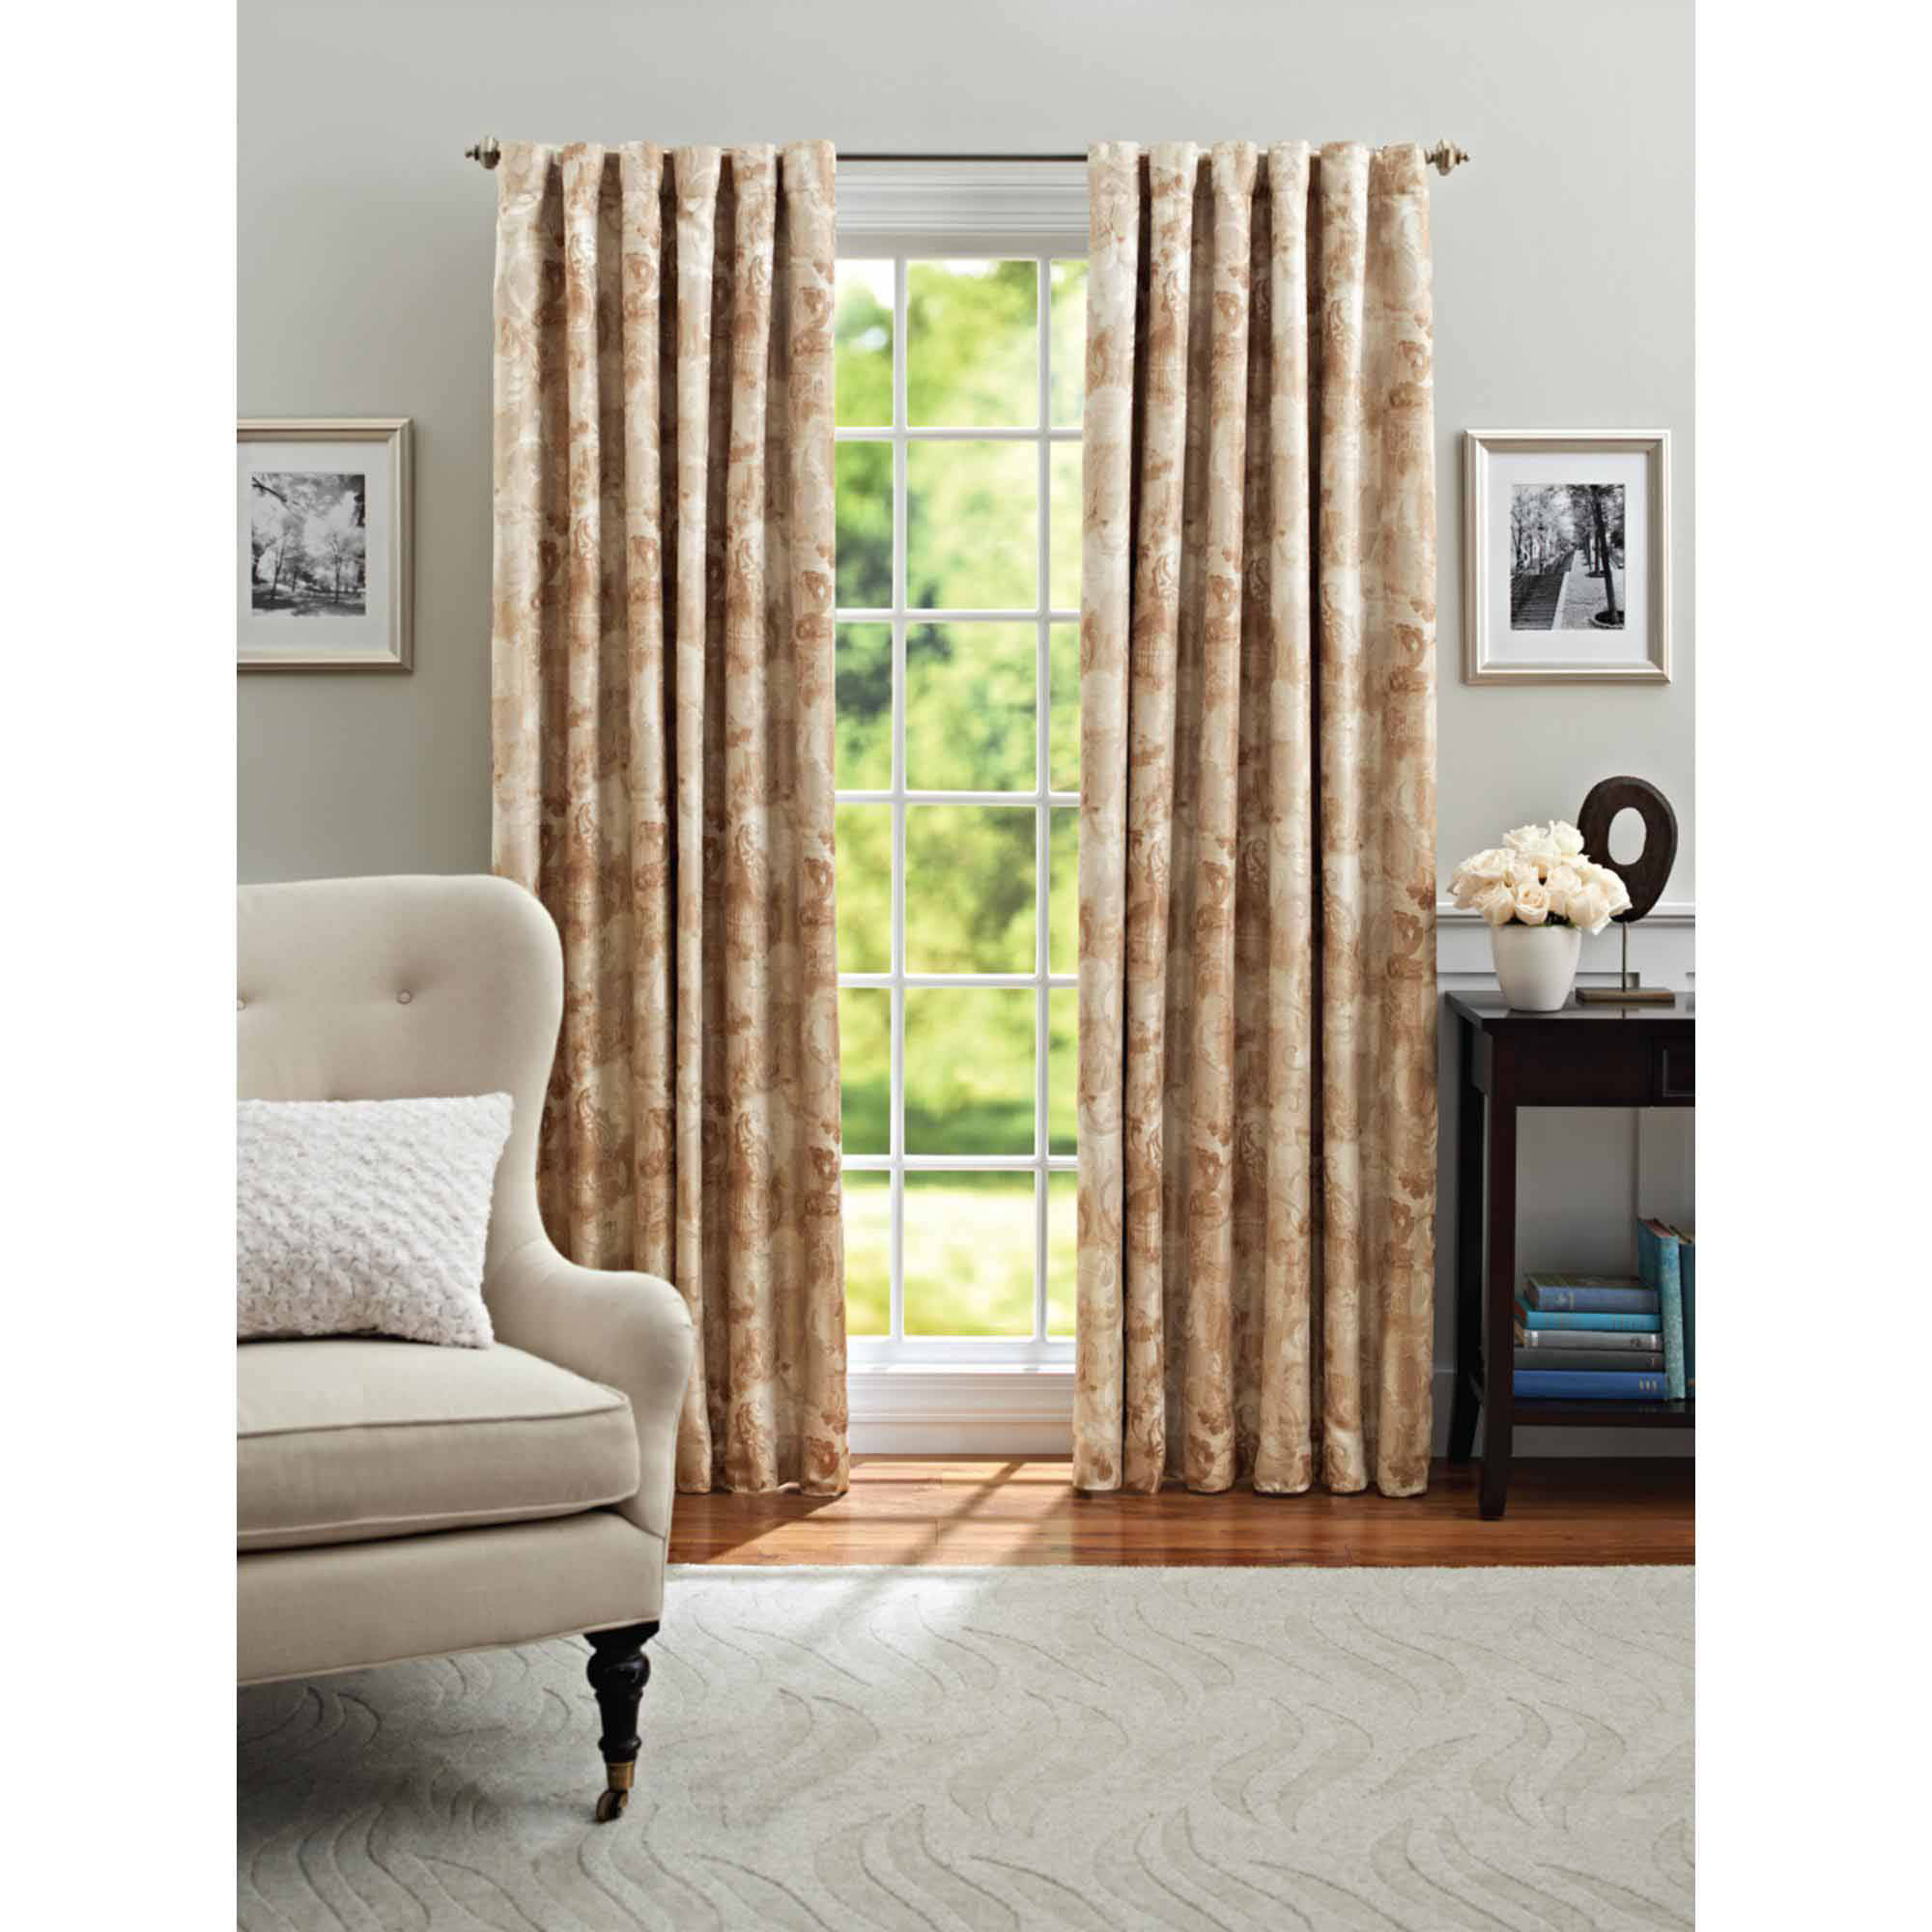 "Better Homes and Gardens Leaf Scroll Blackout Back-Tab 84"" Length Window Curtain Panel, Multiple Colors Available"